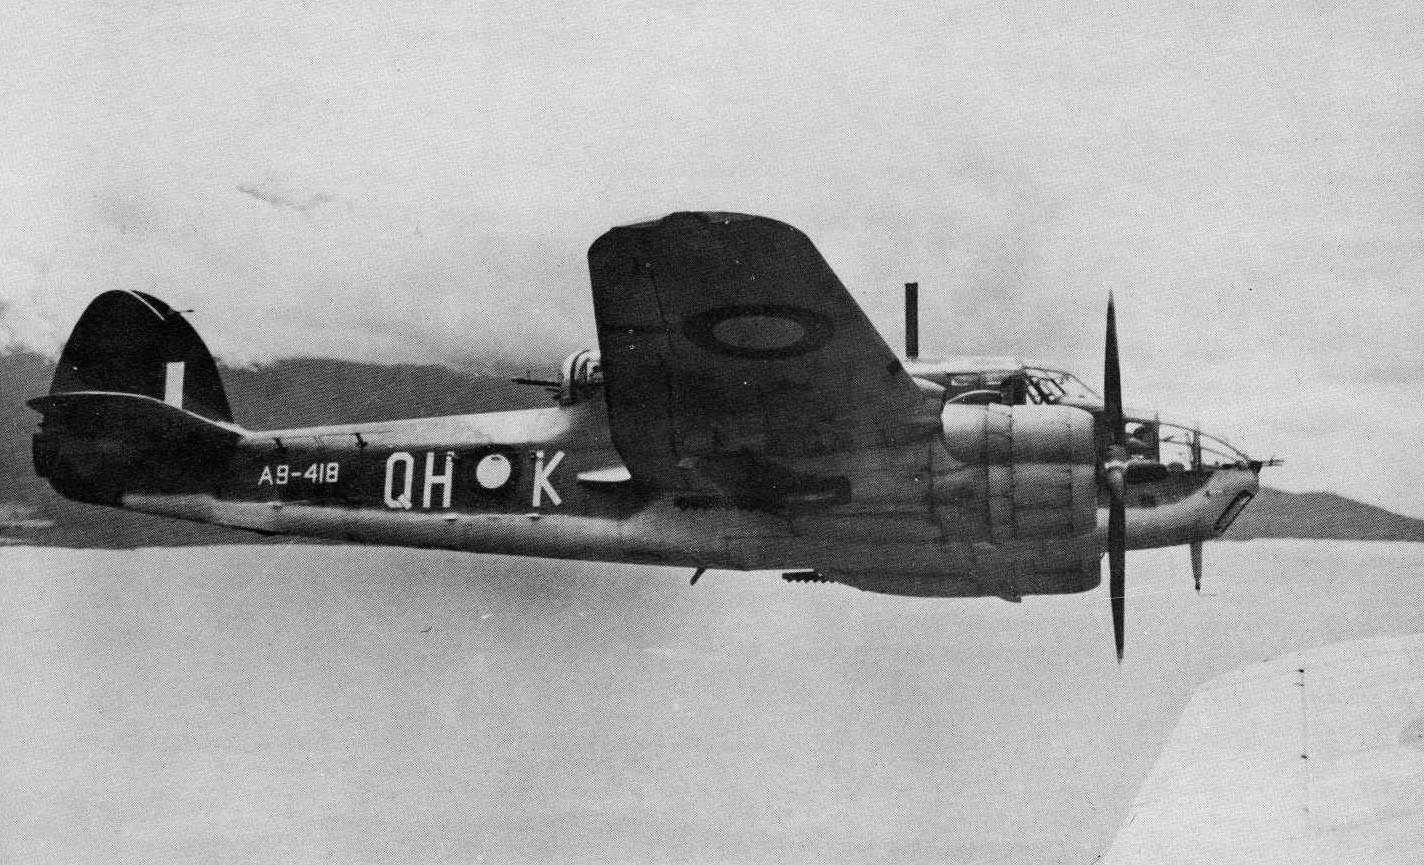 Bristol-Beaufort-MkVIM-RAAF-100Sqn-QH-K-A9-418-off-the-coast-of-New-Britain-1945-AWM-01